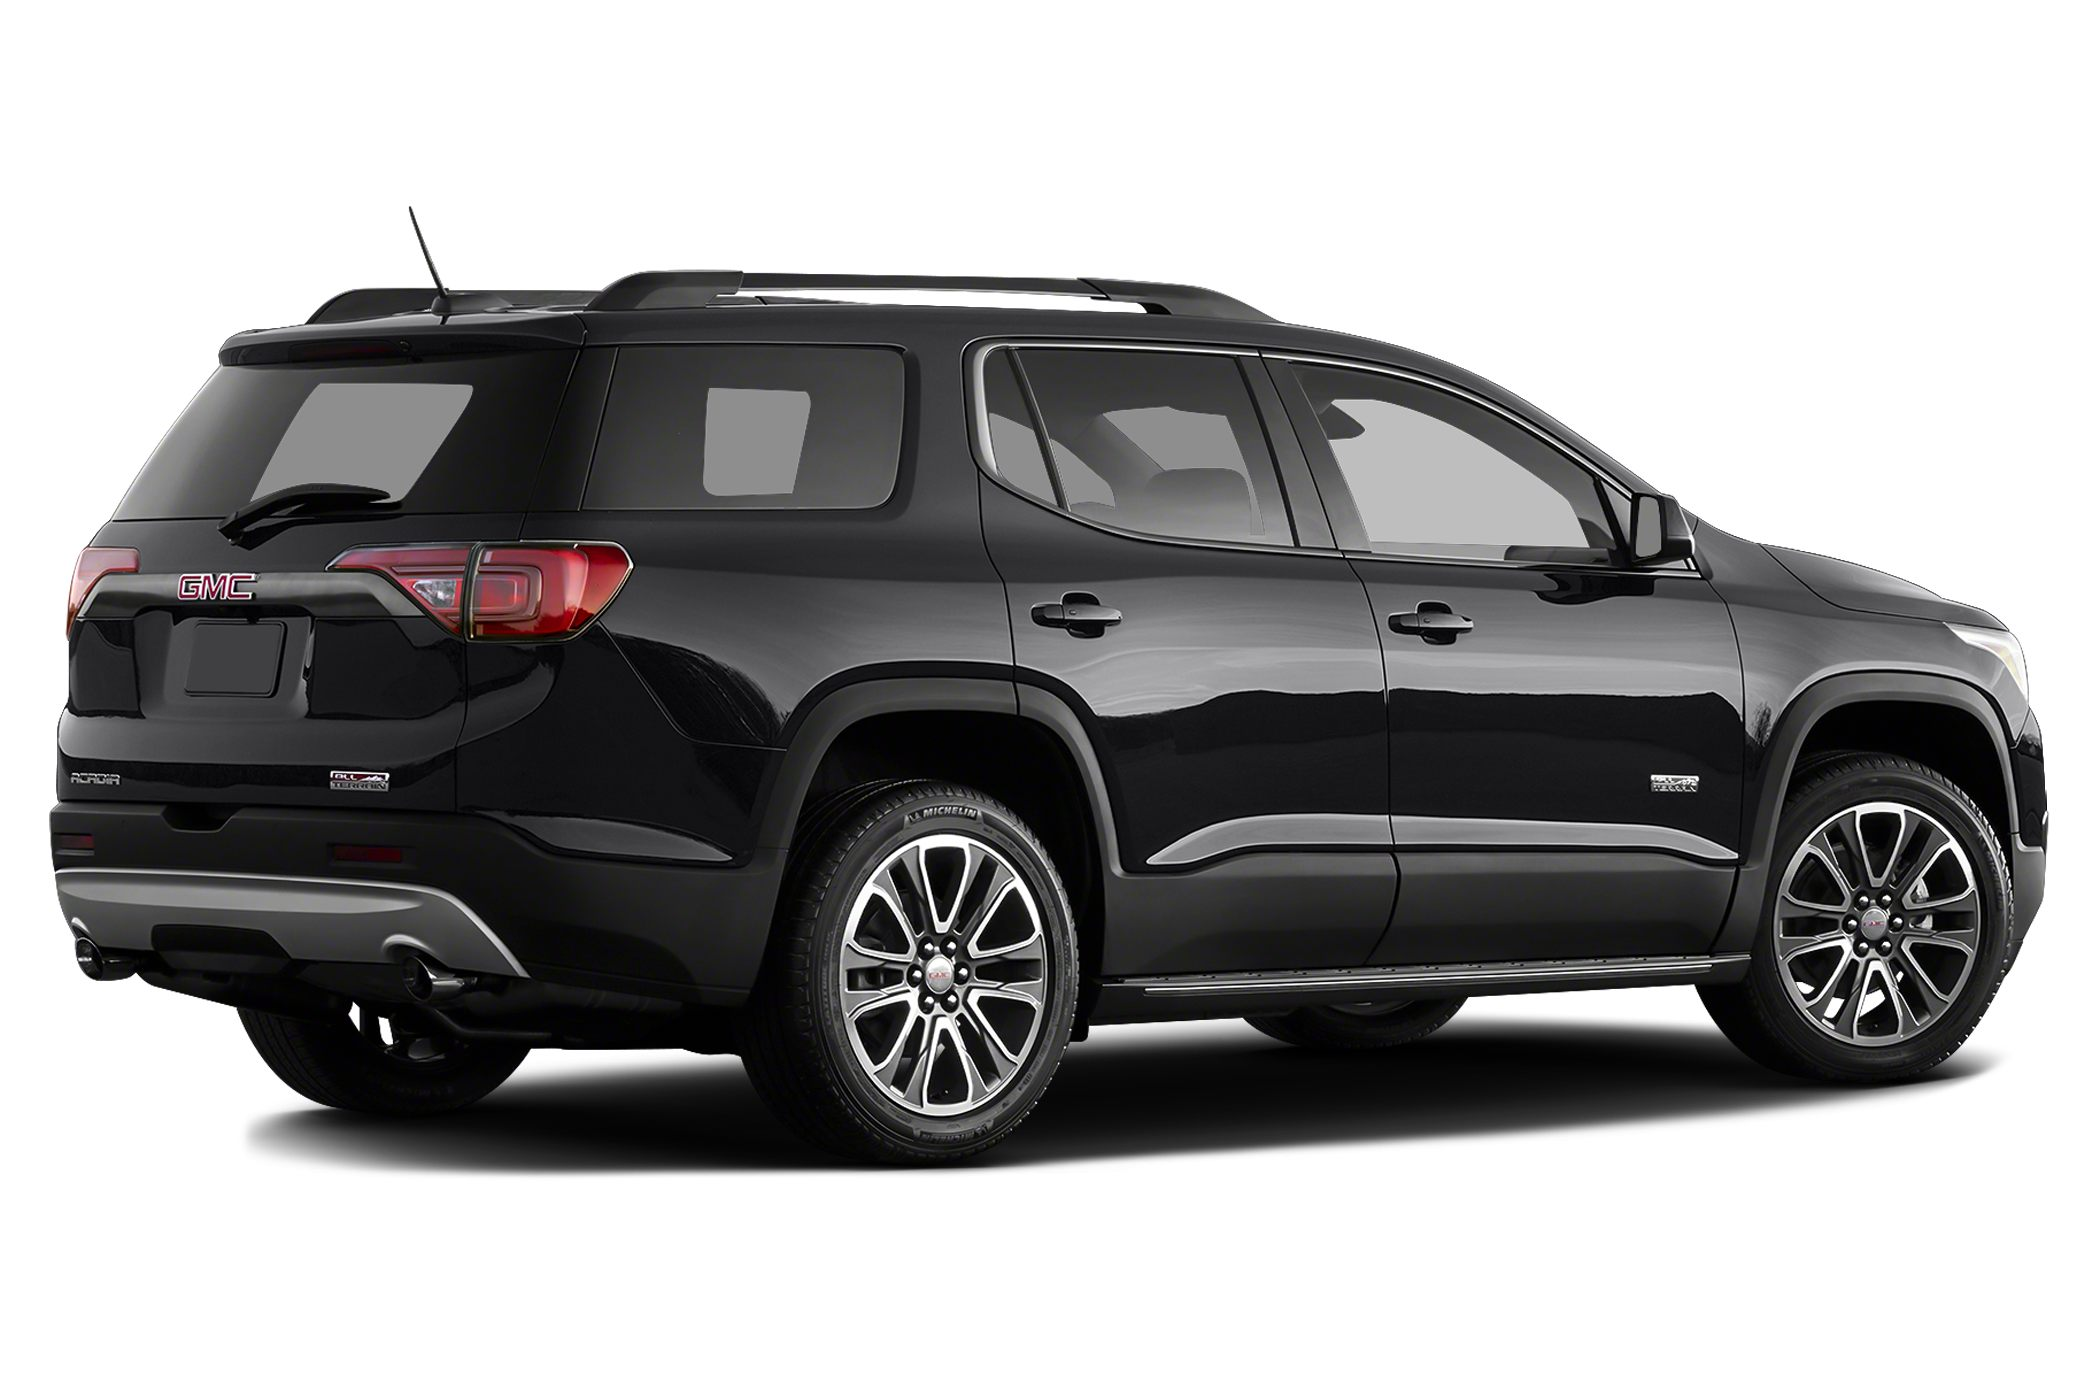 2017 gmc acadia deals prices incentives leases overview carsdirect. Black Bedroom Furniture Sets. Home Design Ideas